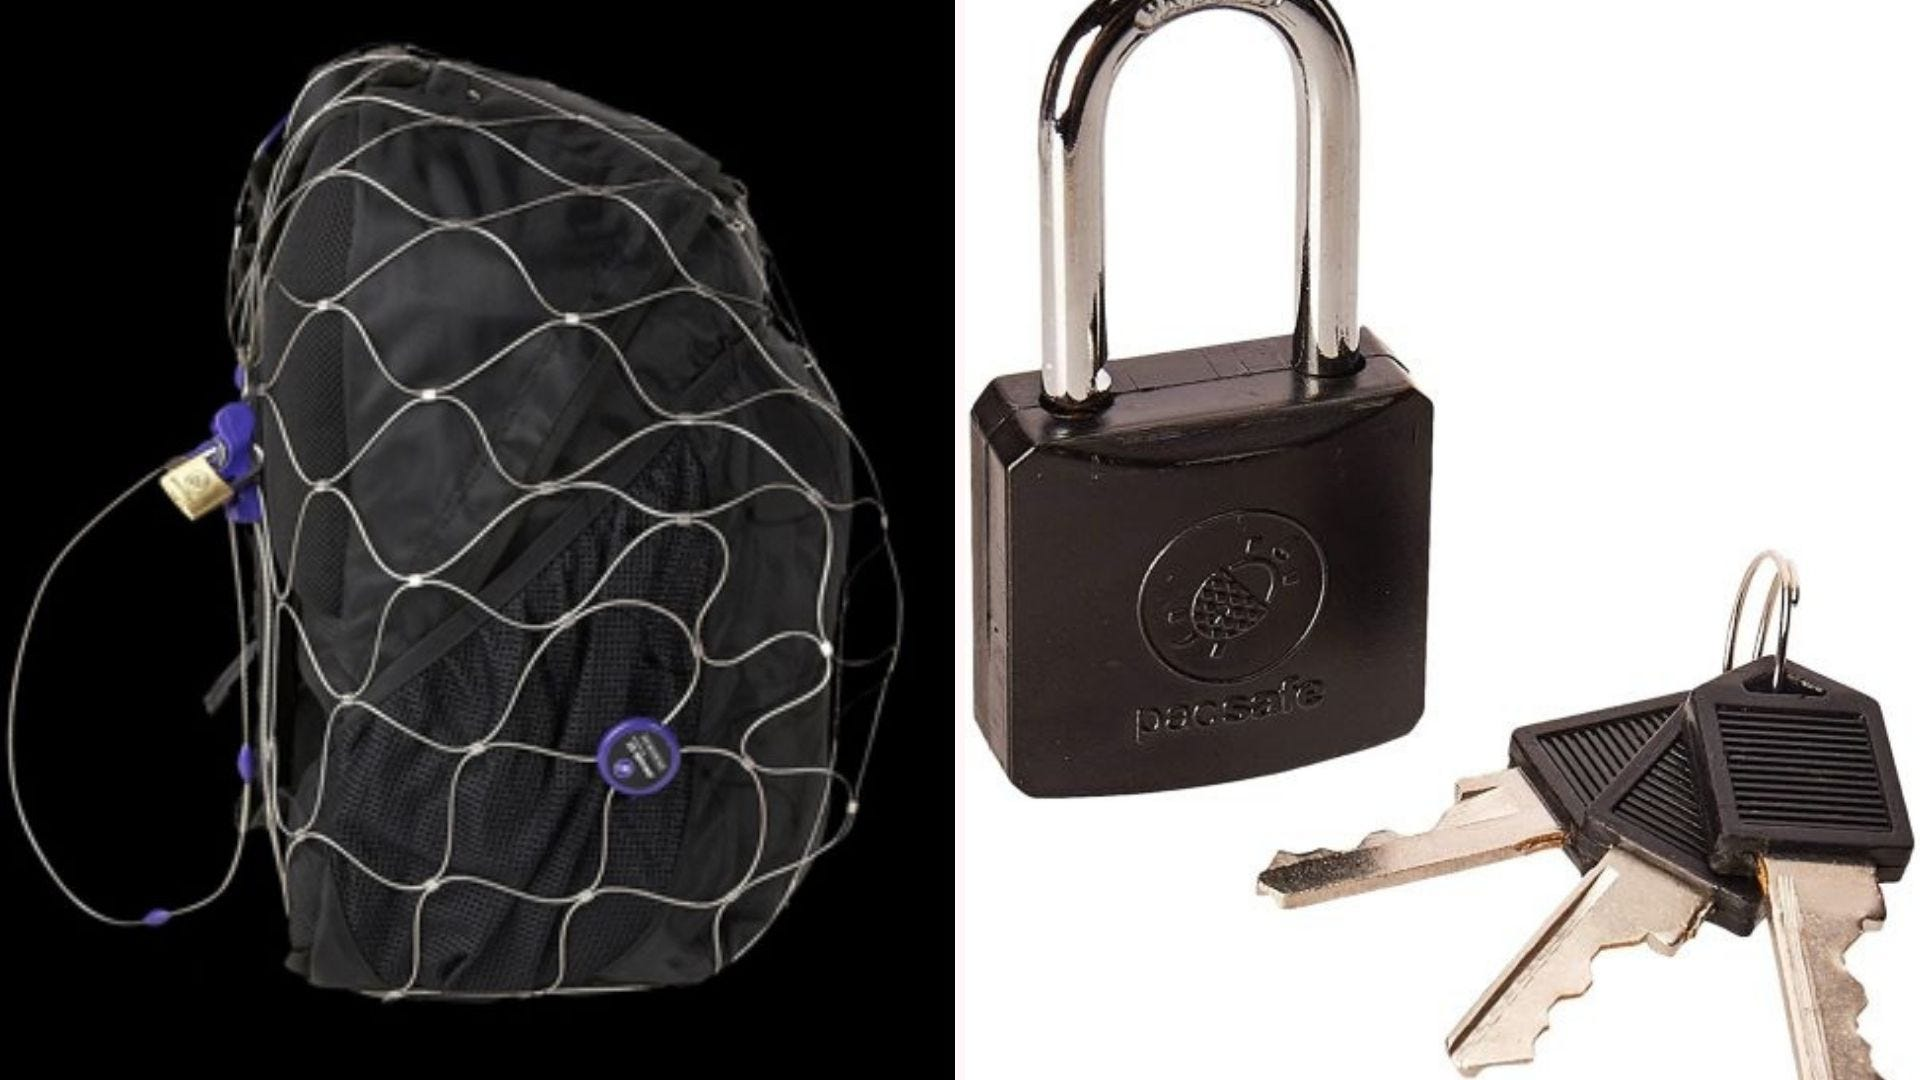 Pacsafe luggage protector on a backpack and the lock and keys.